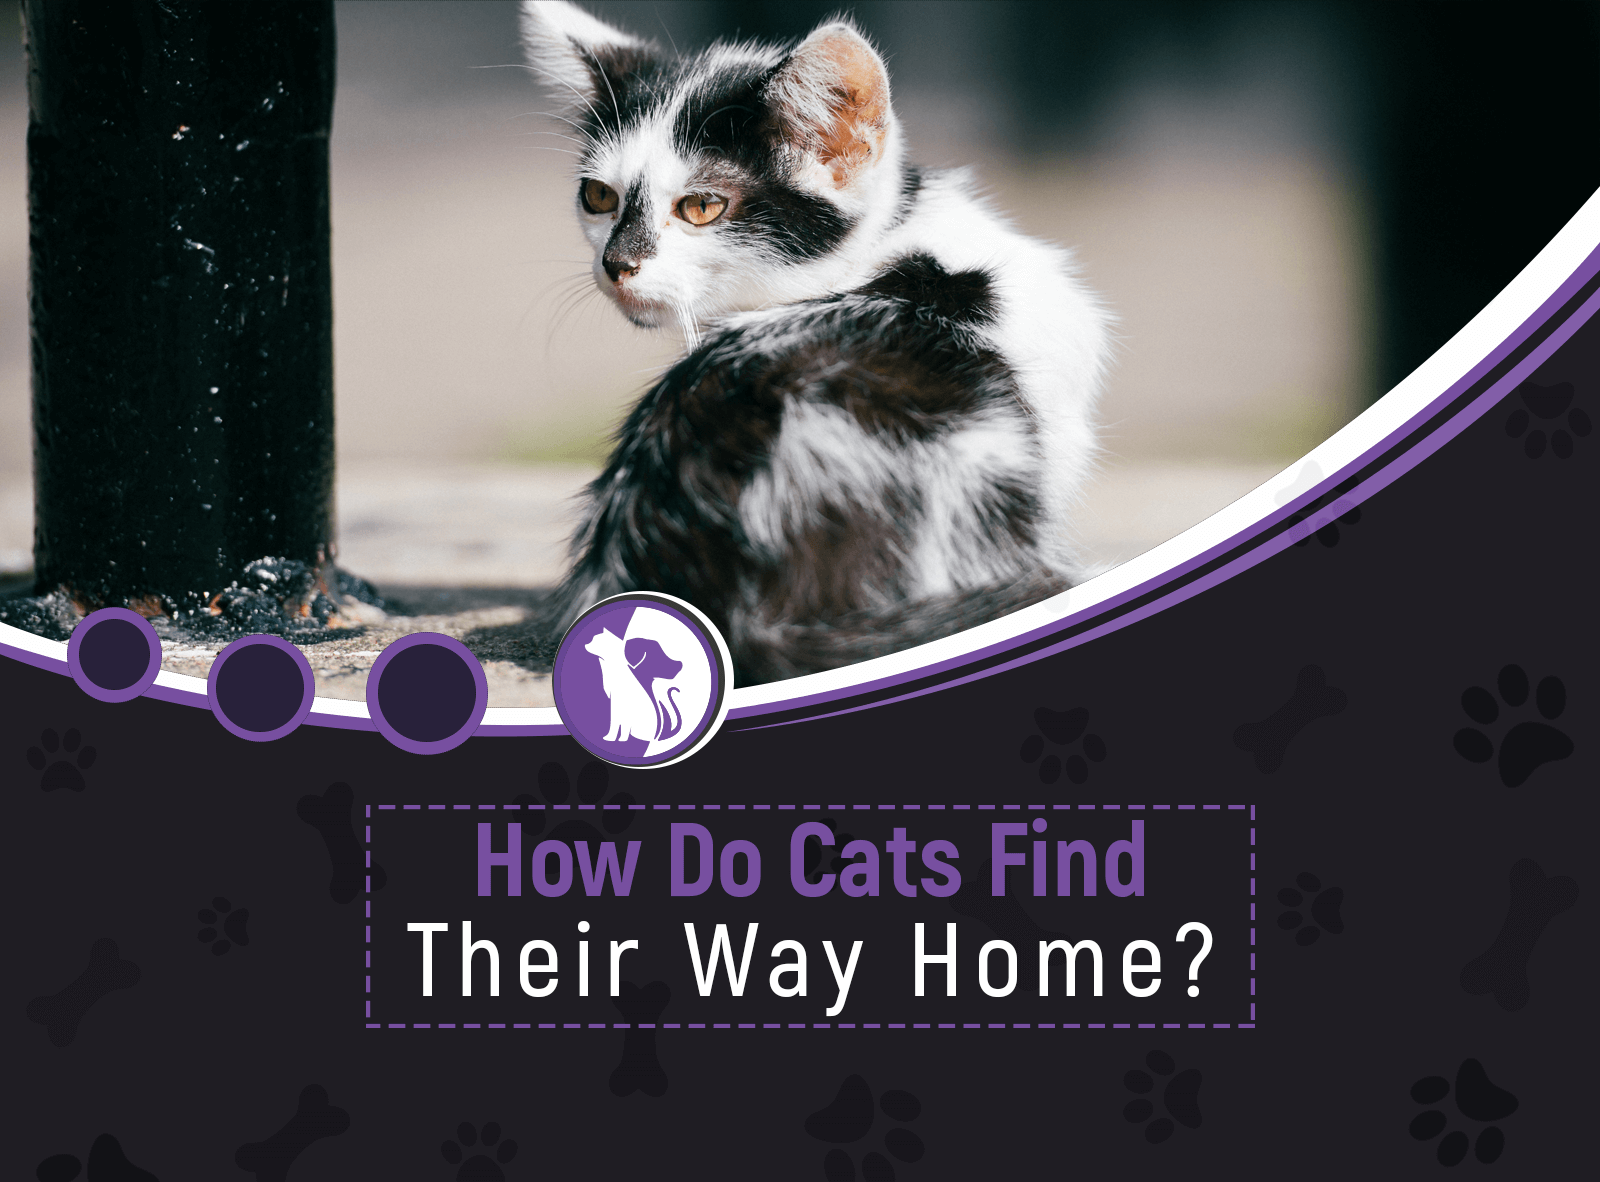 How Do Cats Find Their Way Home?